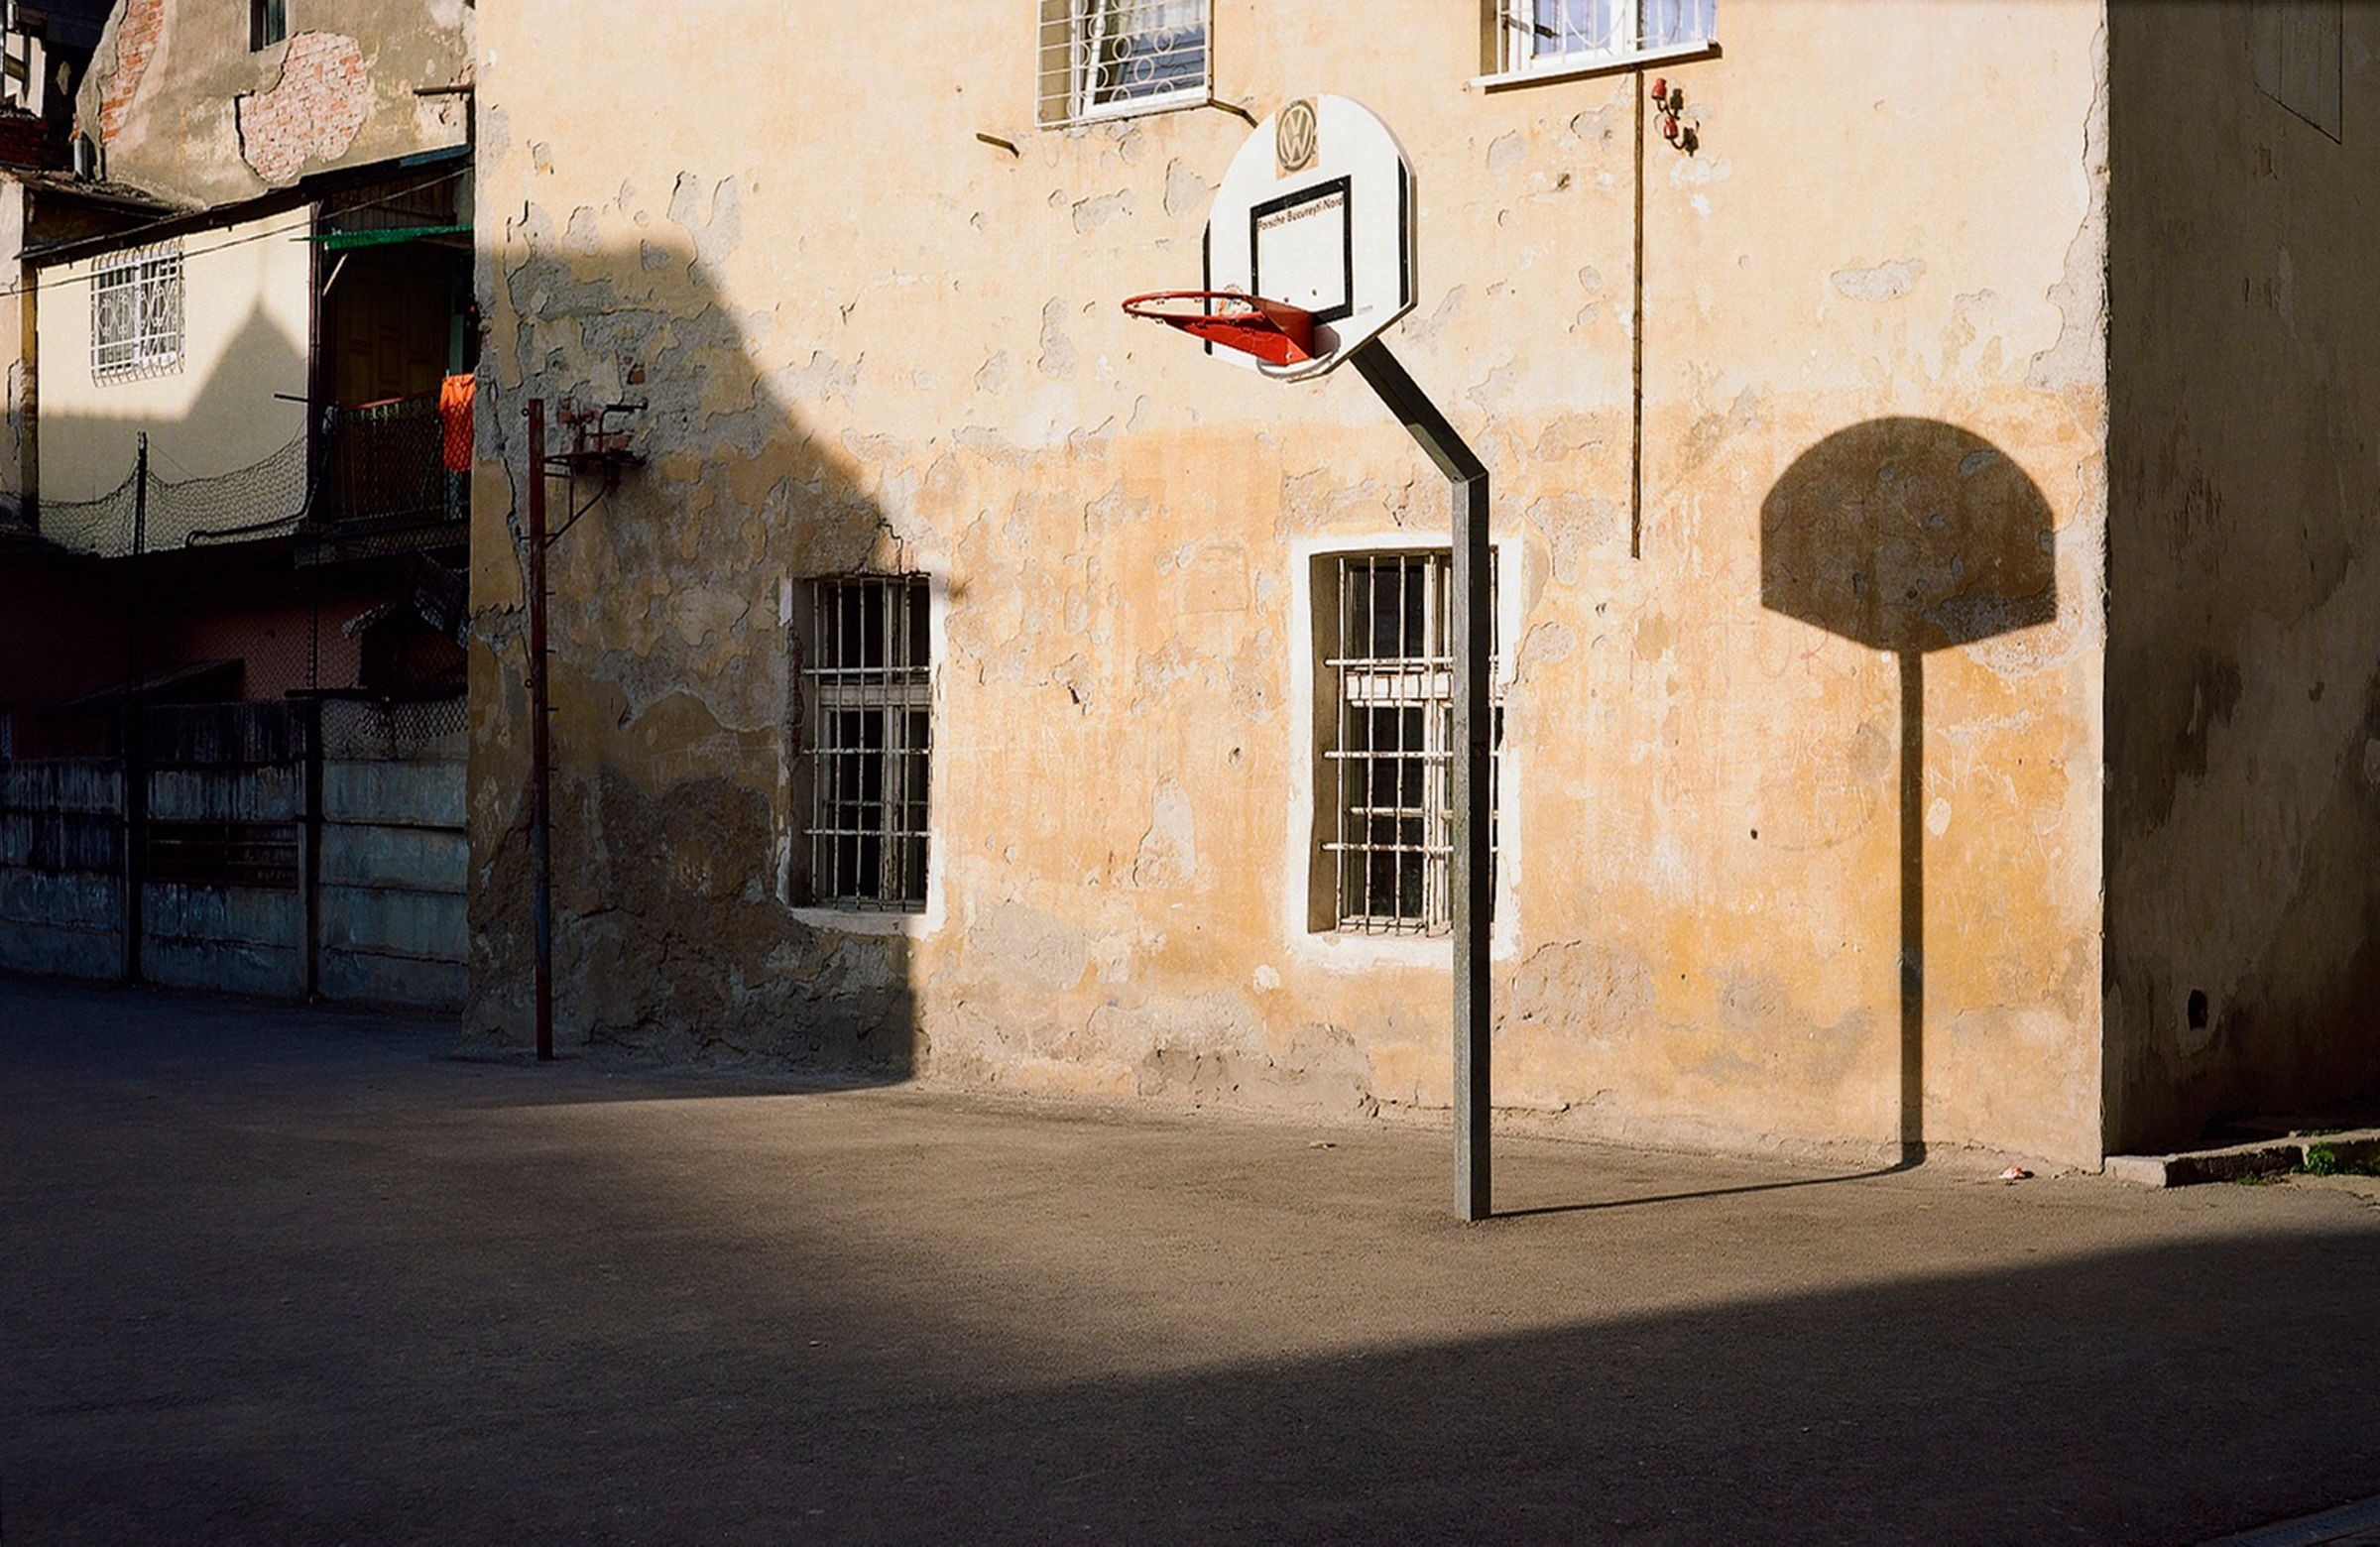 Basketball Court, Brasov